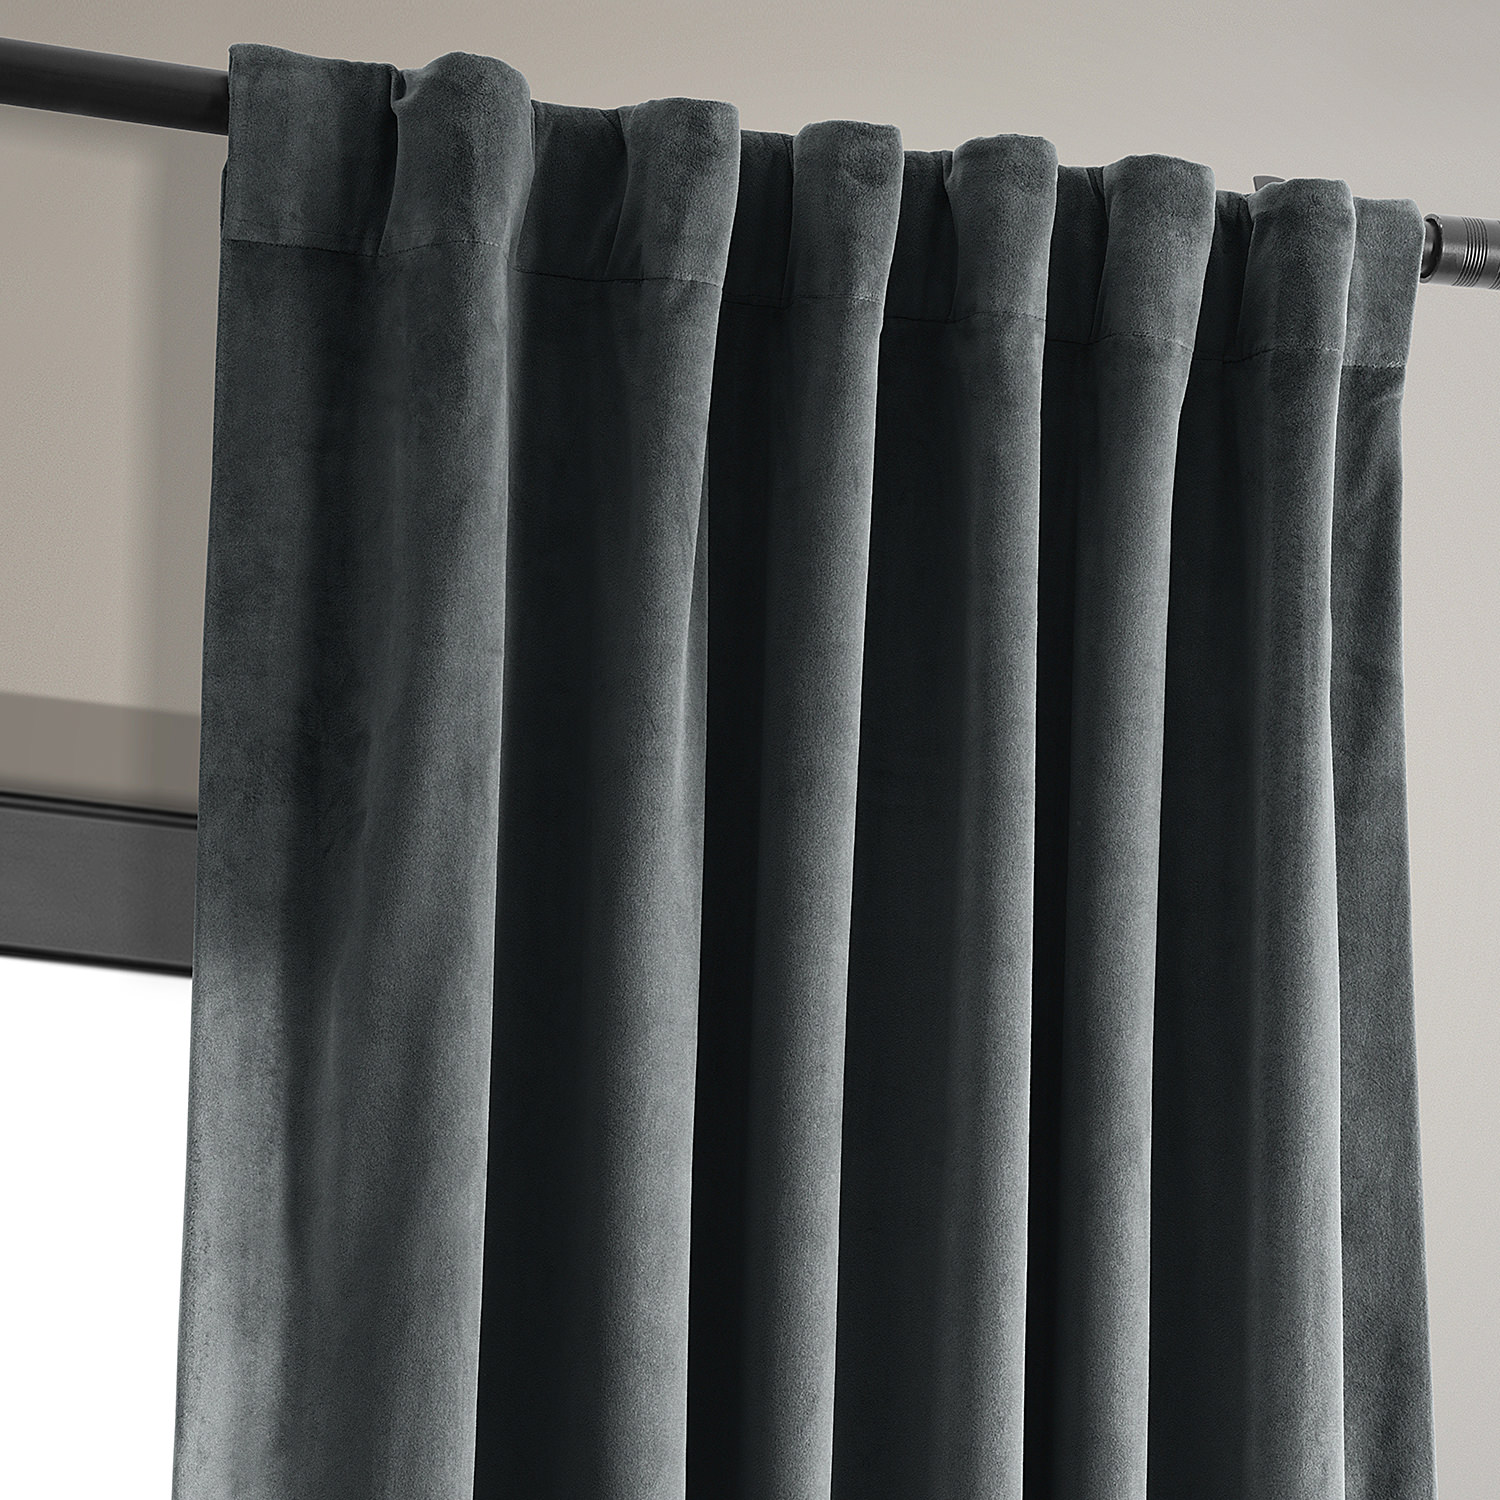 Signature Natural Grey Blackout Velvet Curtains